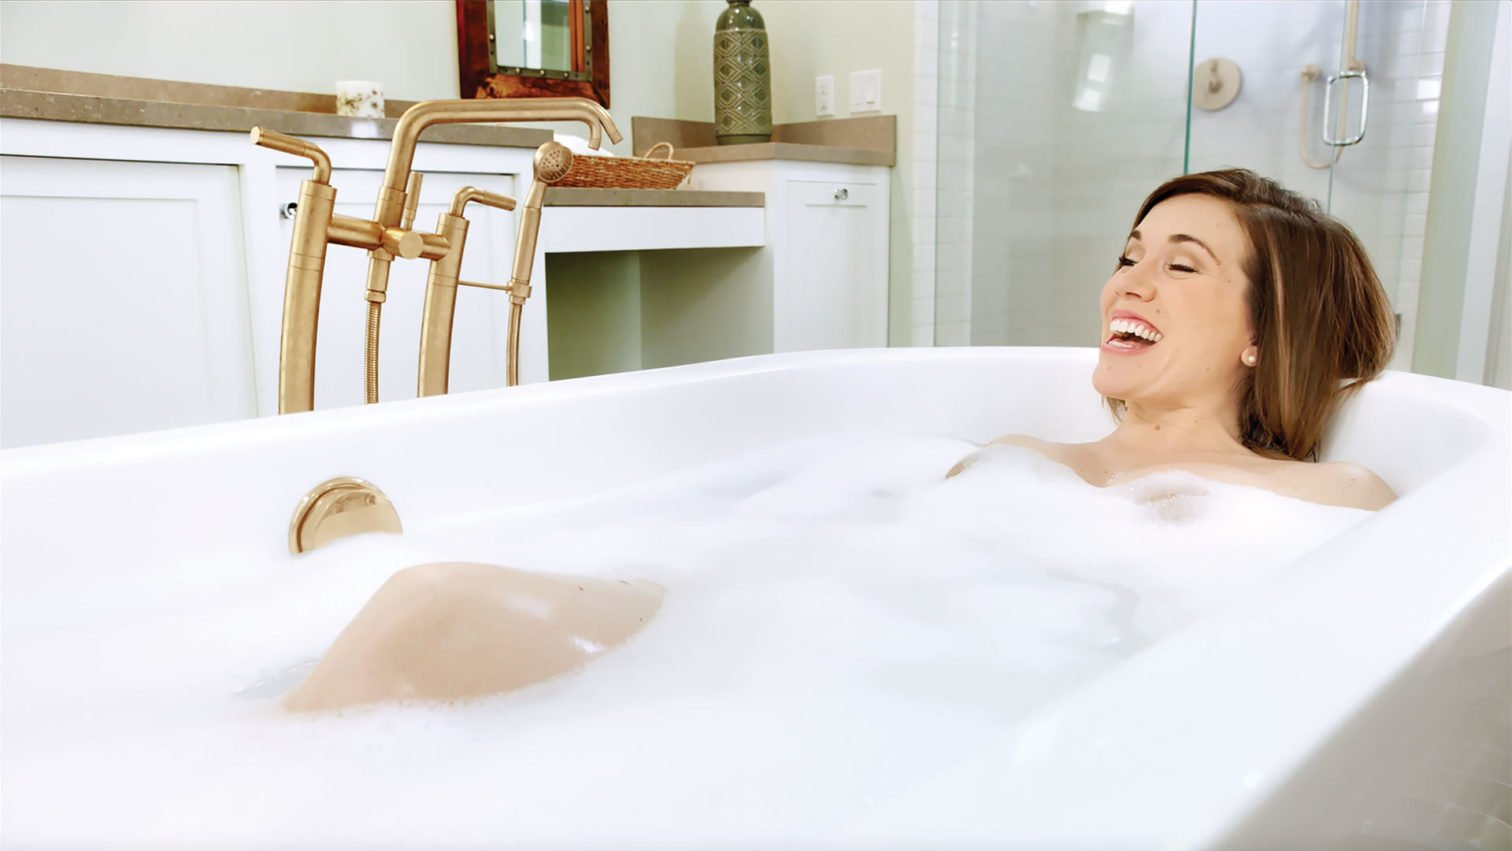 Woman sings with Descanso tub filler